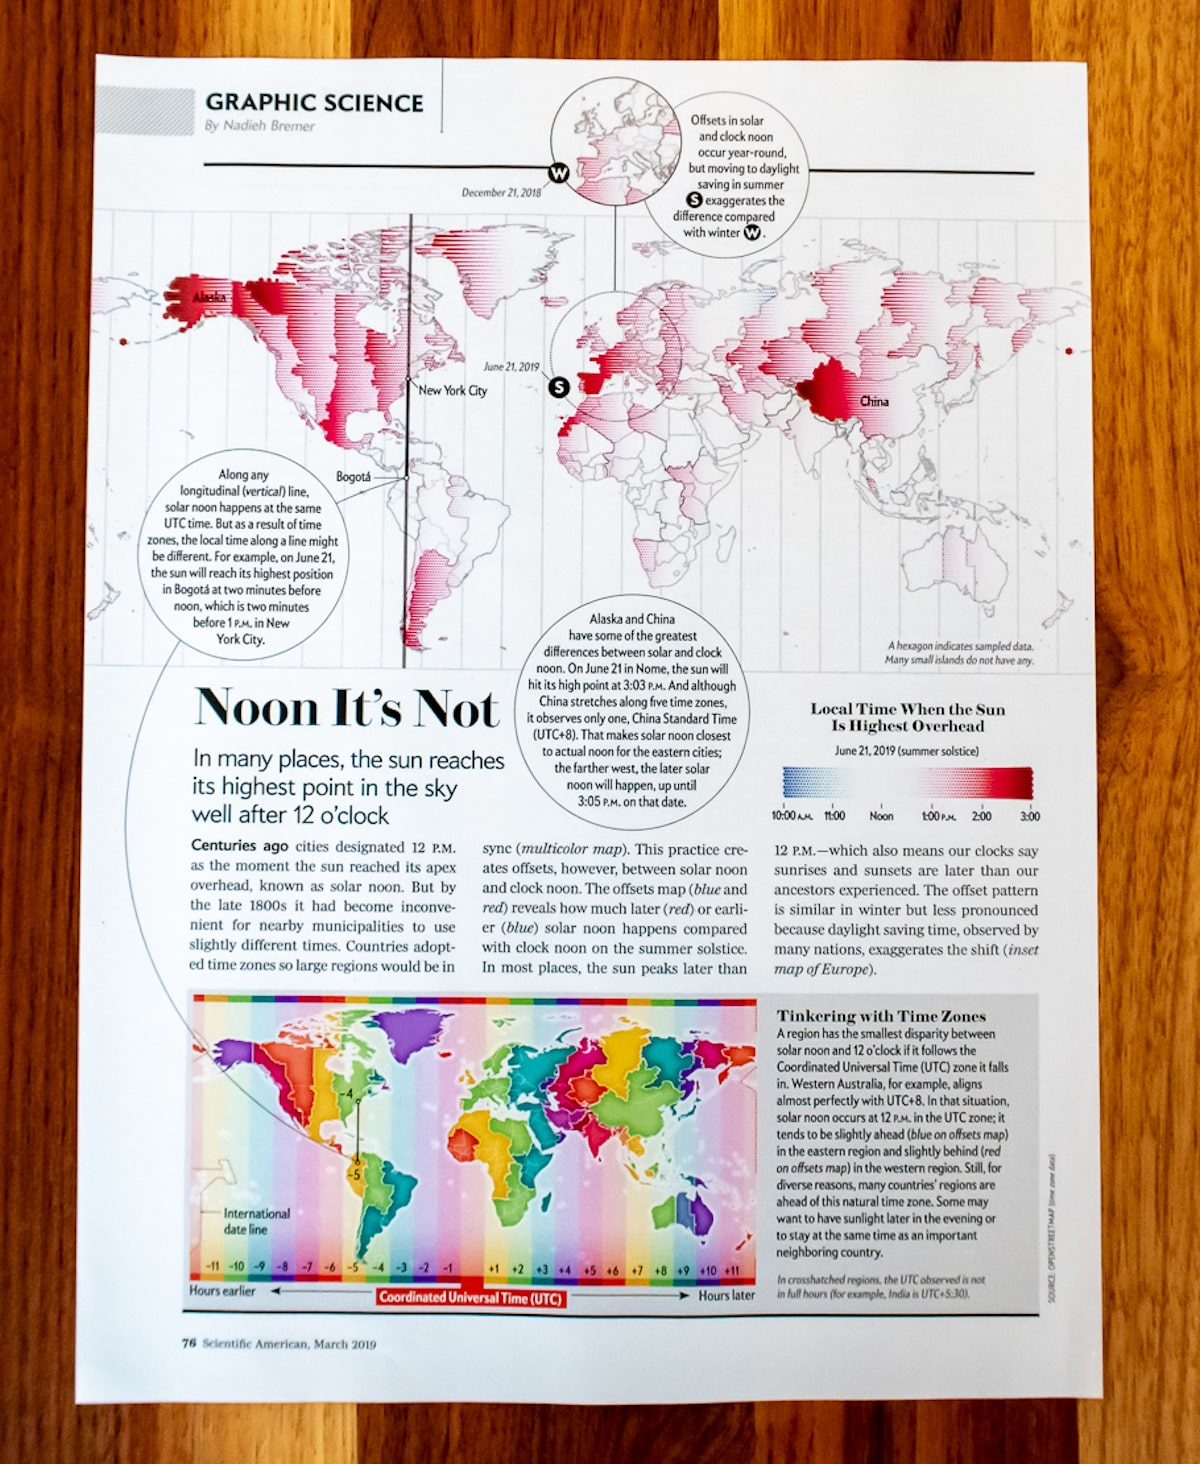 The Graphic Science page from the March 2019 issue of the Scientific American